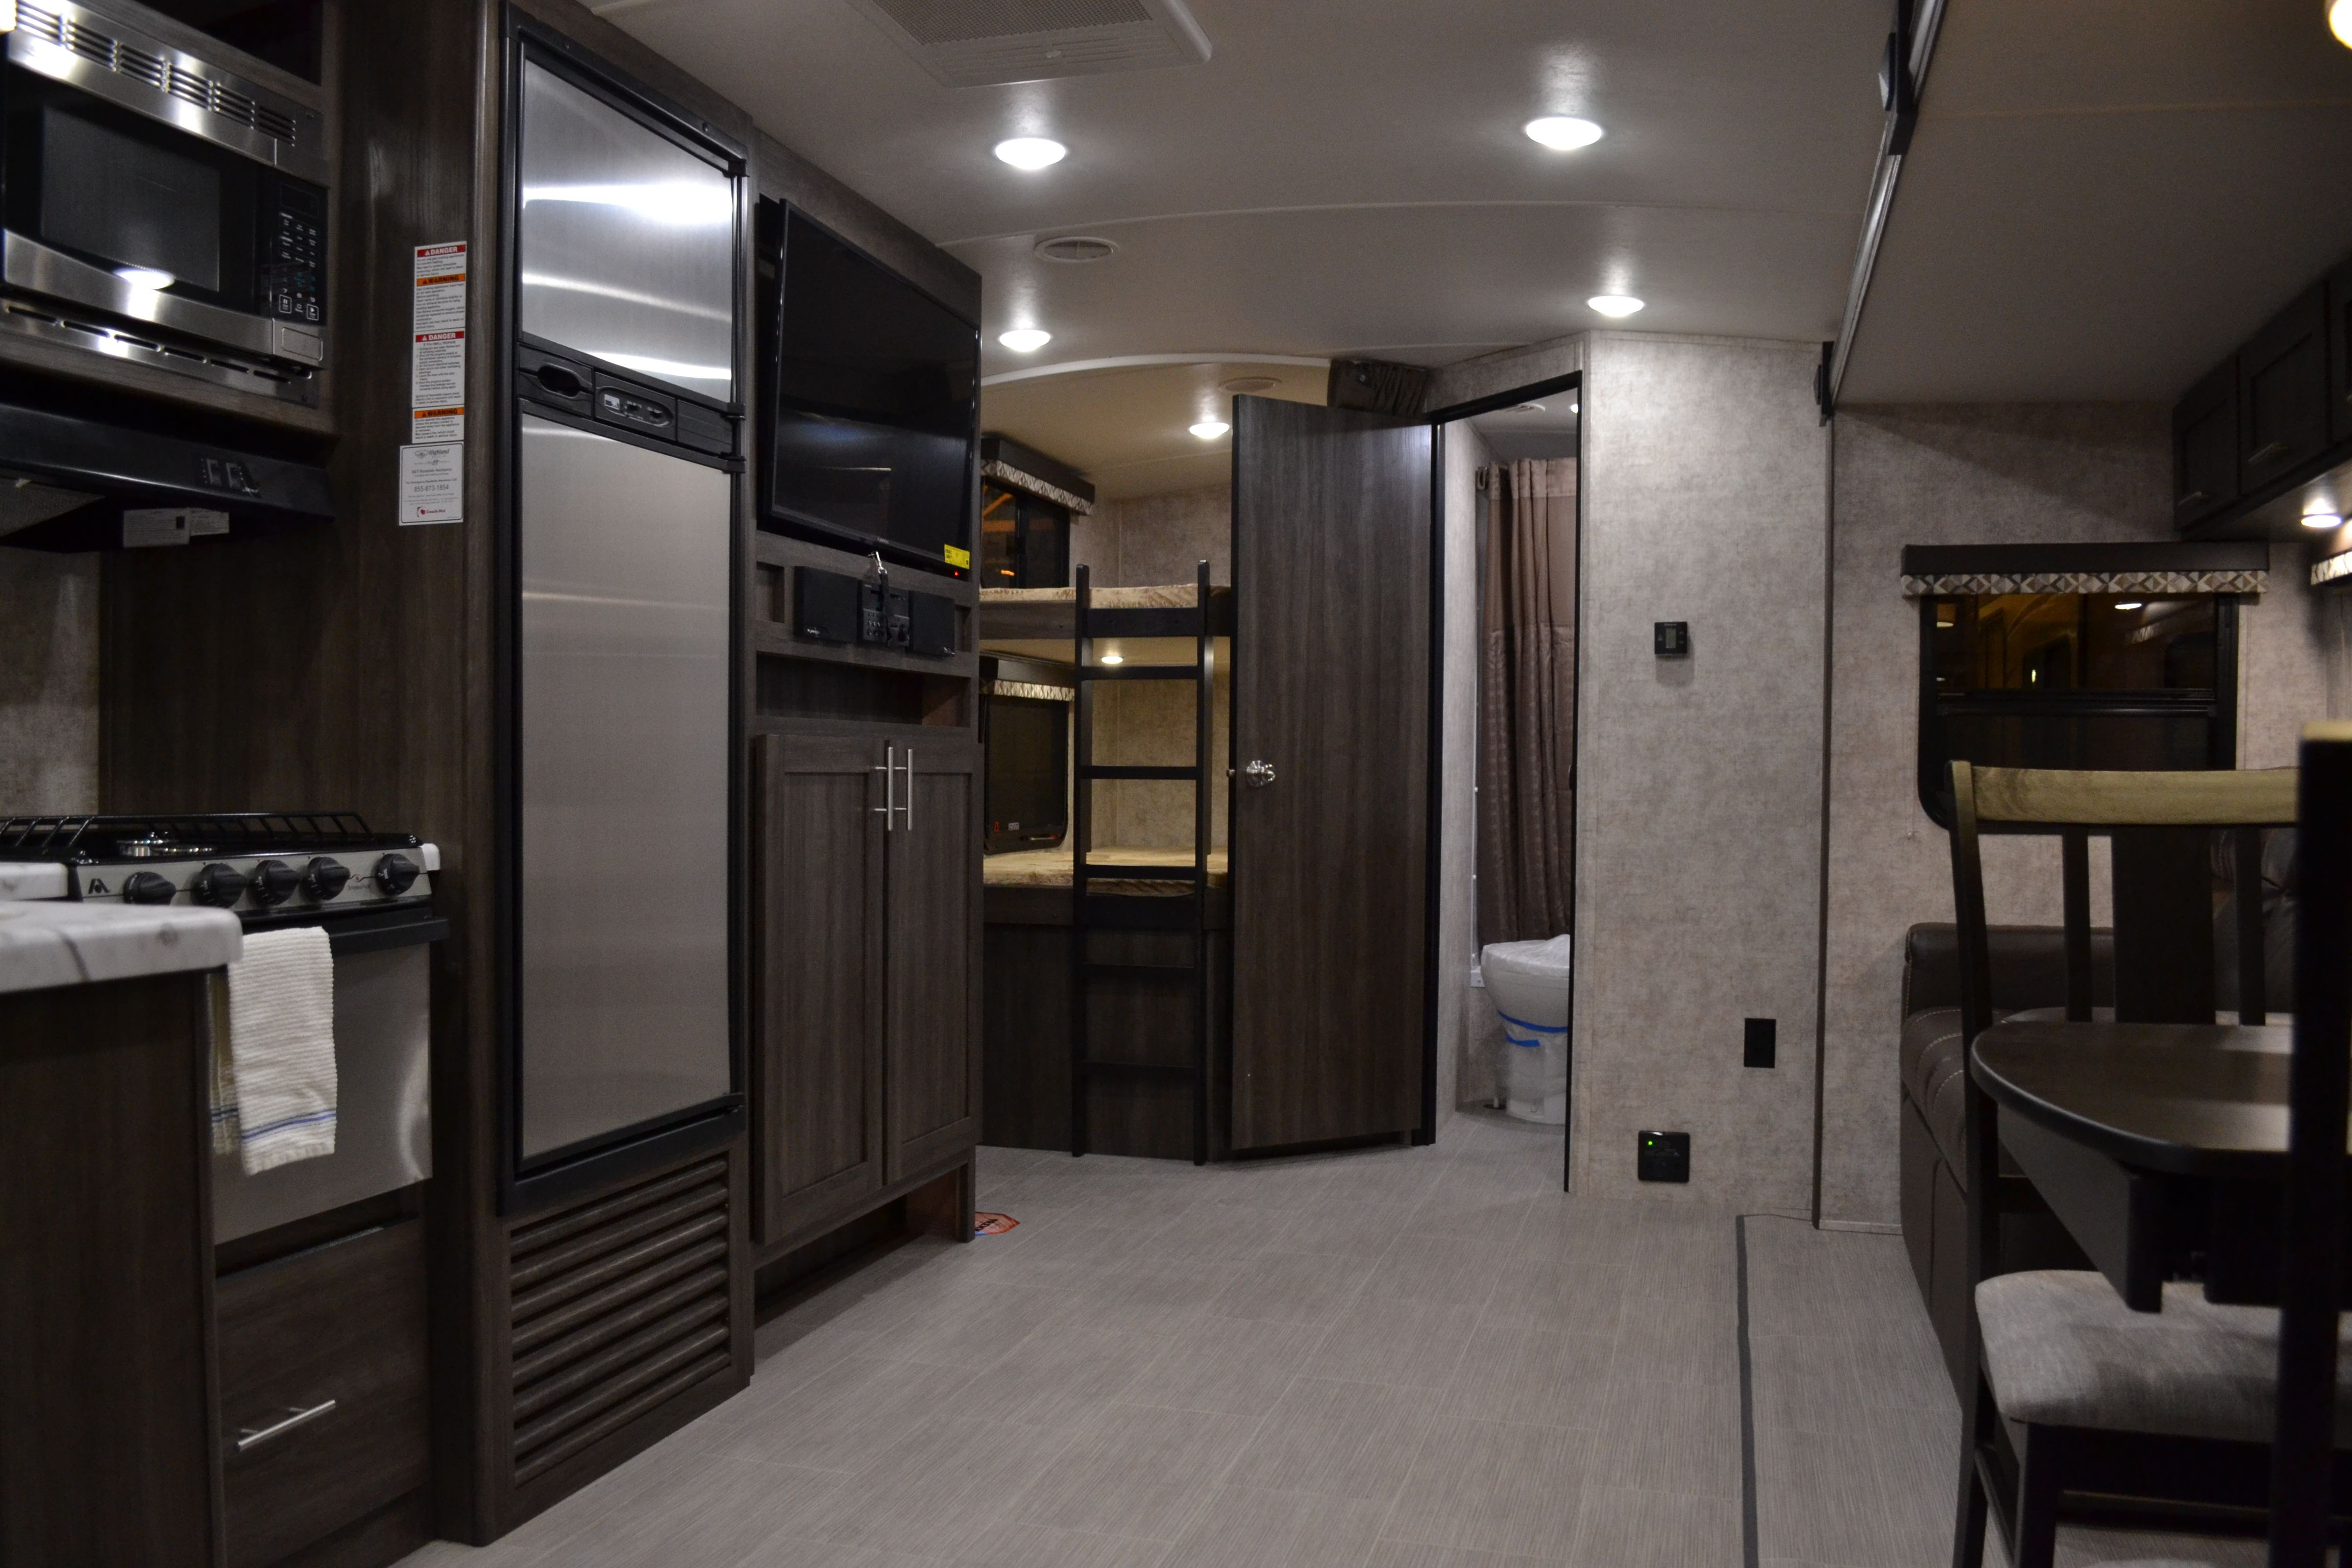 2017 Open Range Ultra Lite 2802bh Travel Trailer With Bunks And